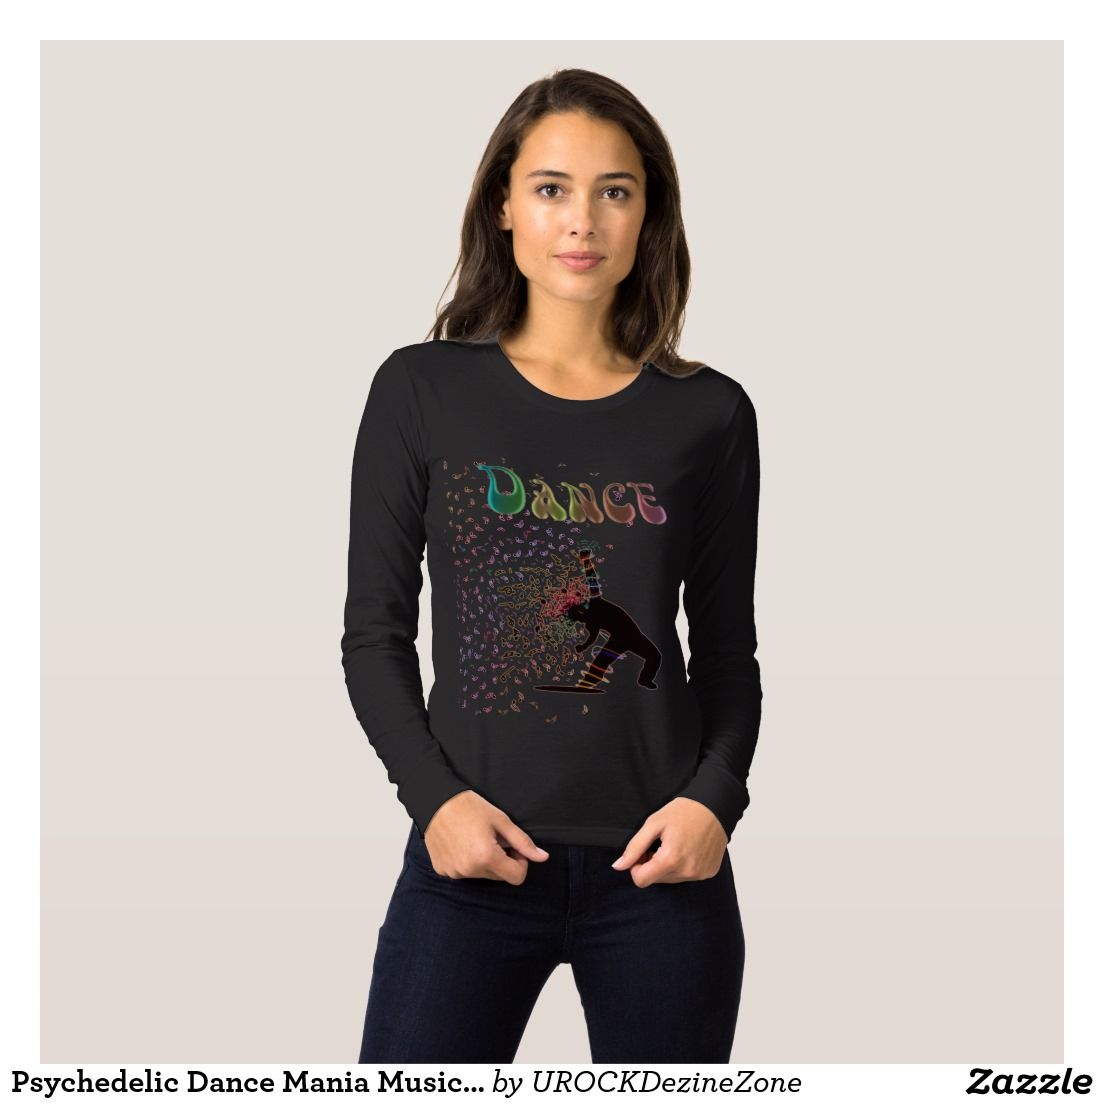 Design t shirt zazzle - Psychedelic Dance Mania Music Notes T Shirt Zazzle